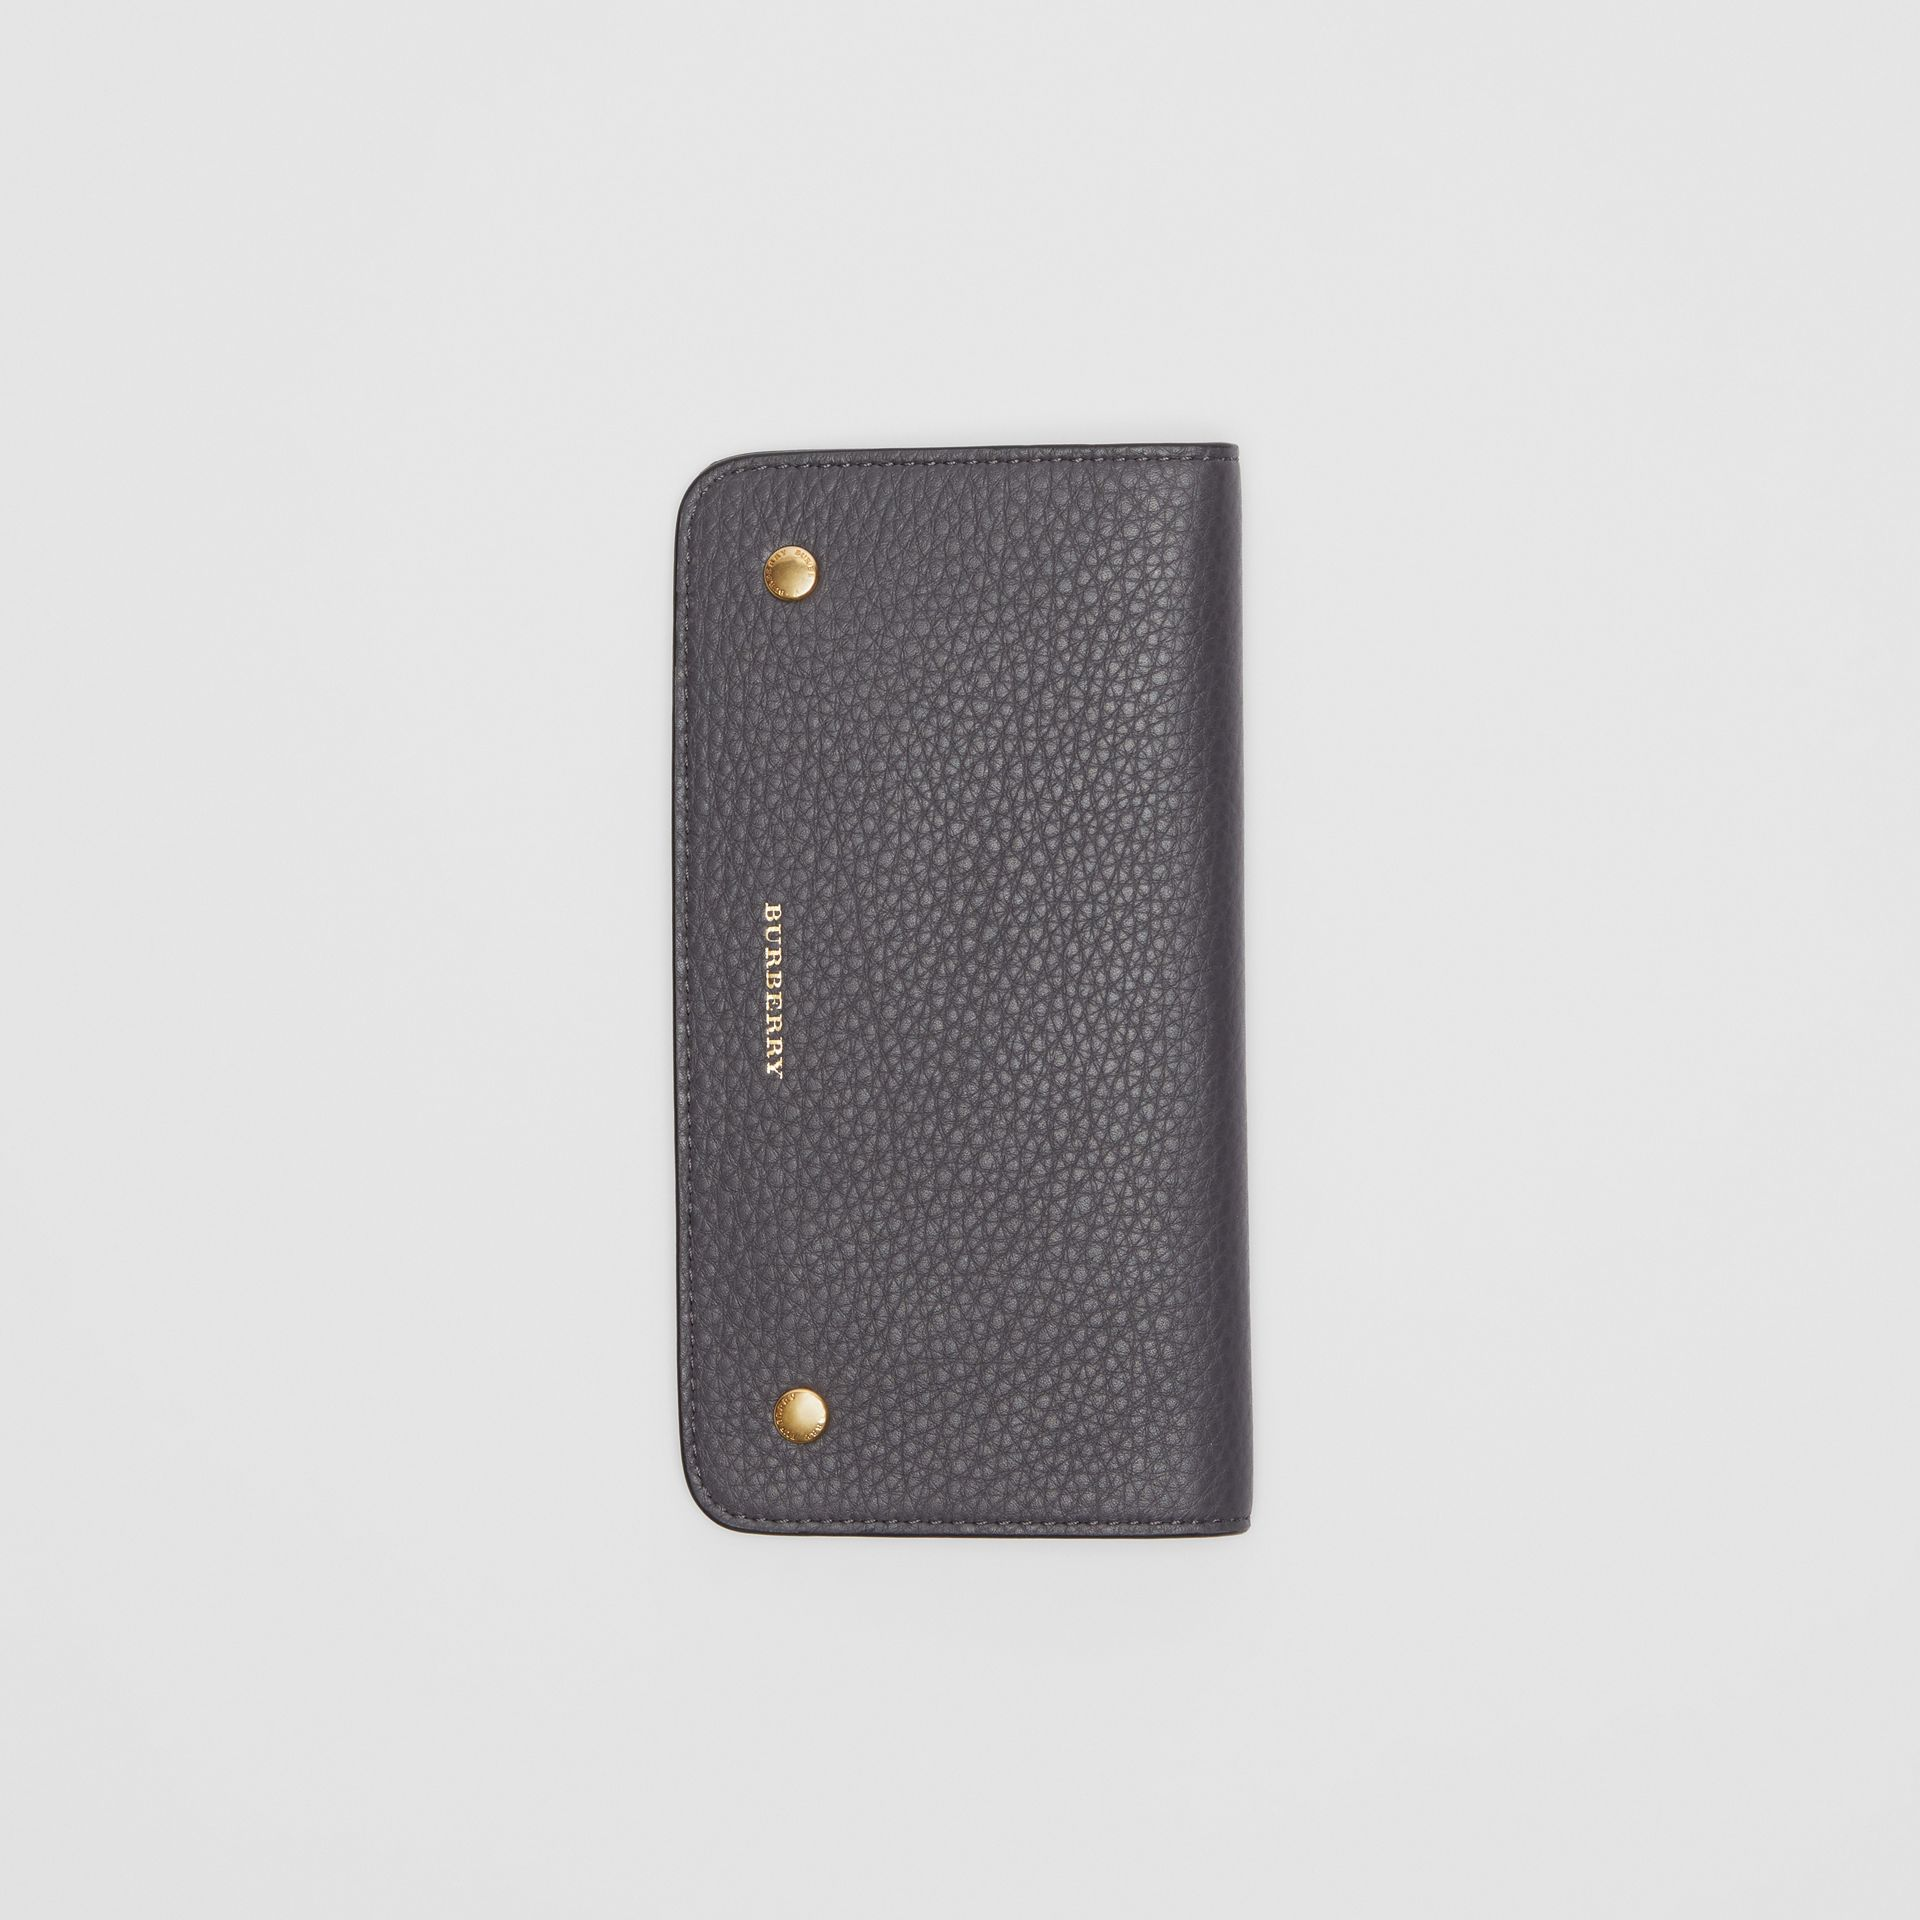 Leather Phone Wallet in Charcoal Grey - Women | Burberry - gallery image 3